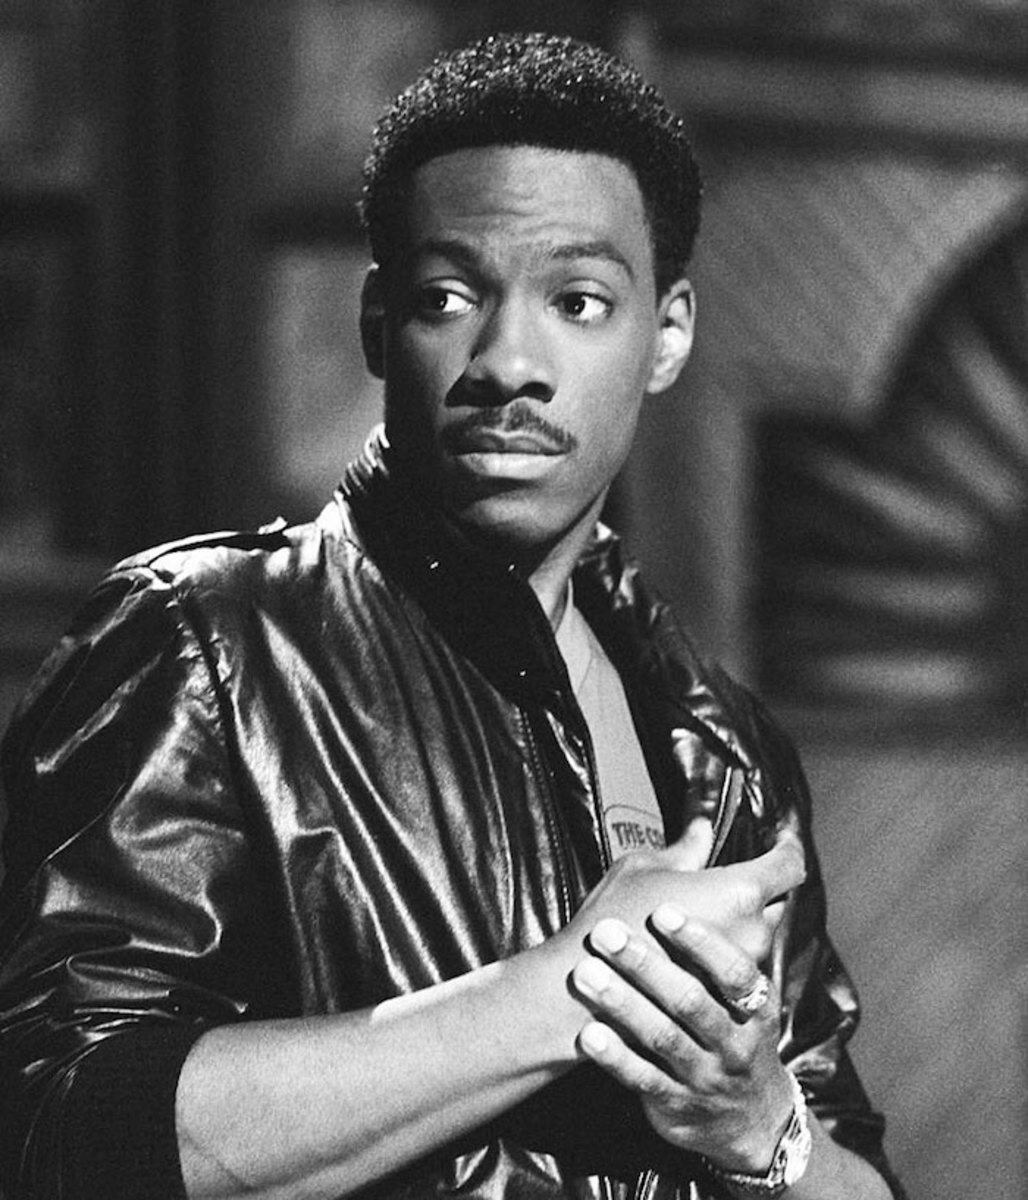 Eddie Murphy, who was a cast member from 1980 to 1984.